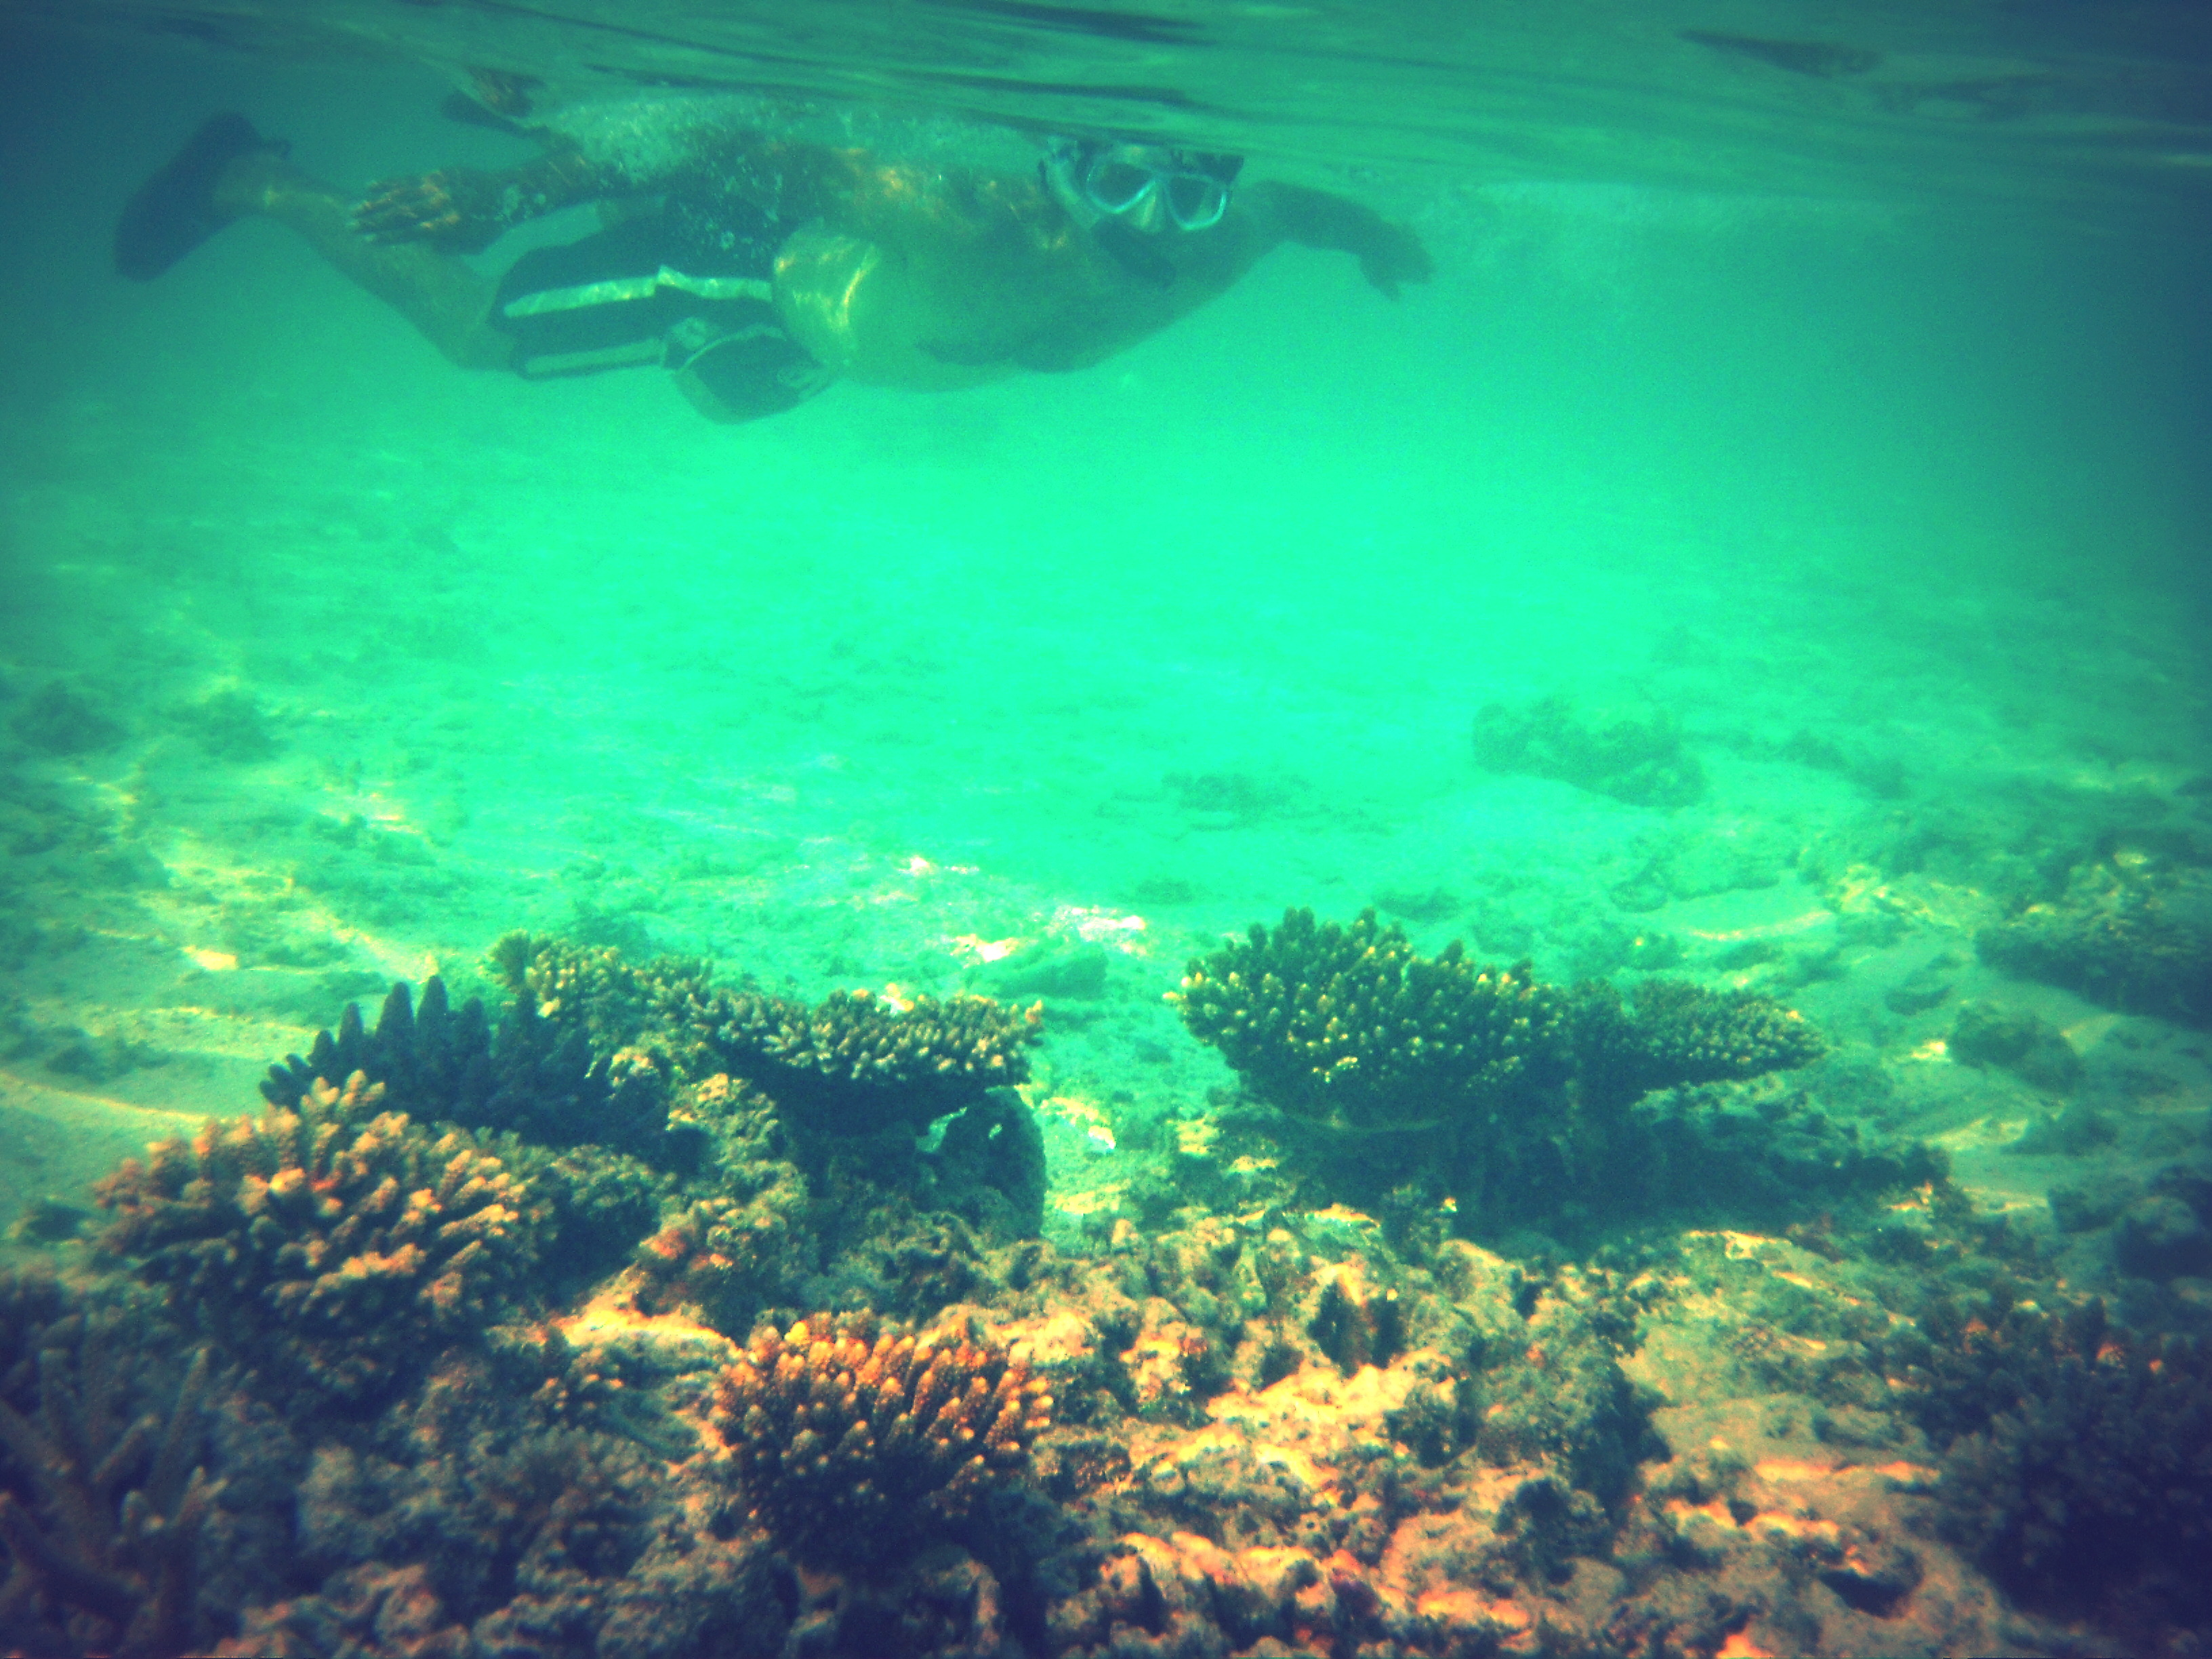 Snorkeling in the shallow seas